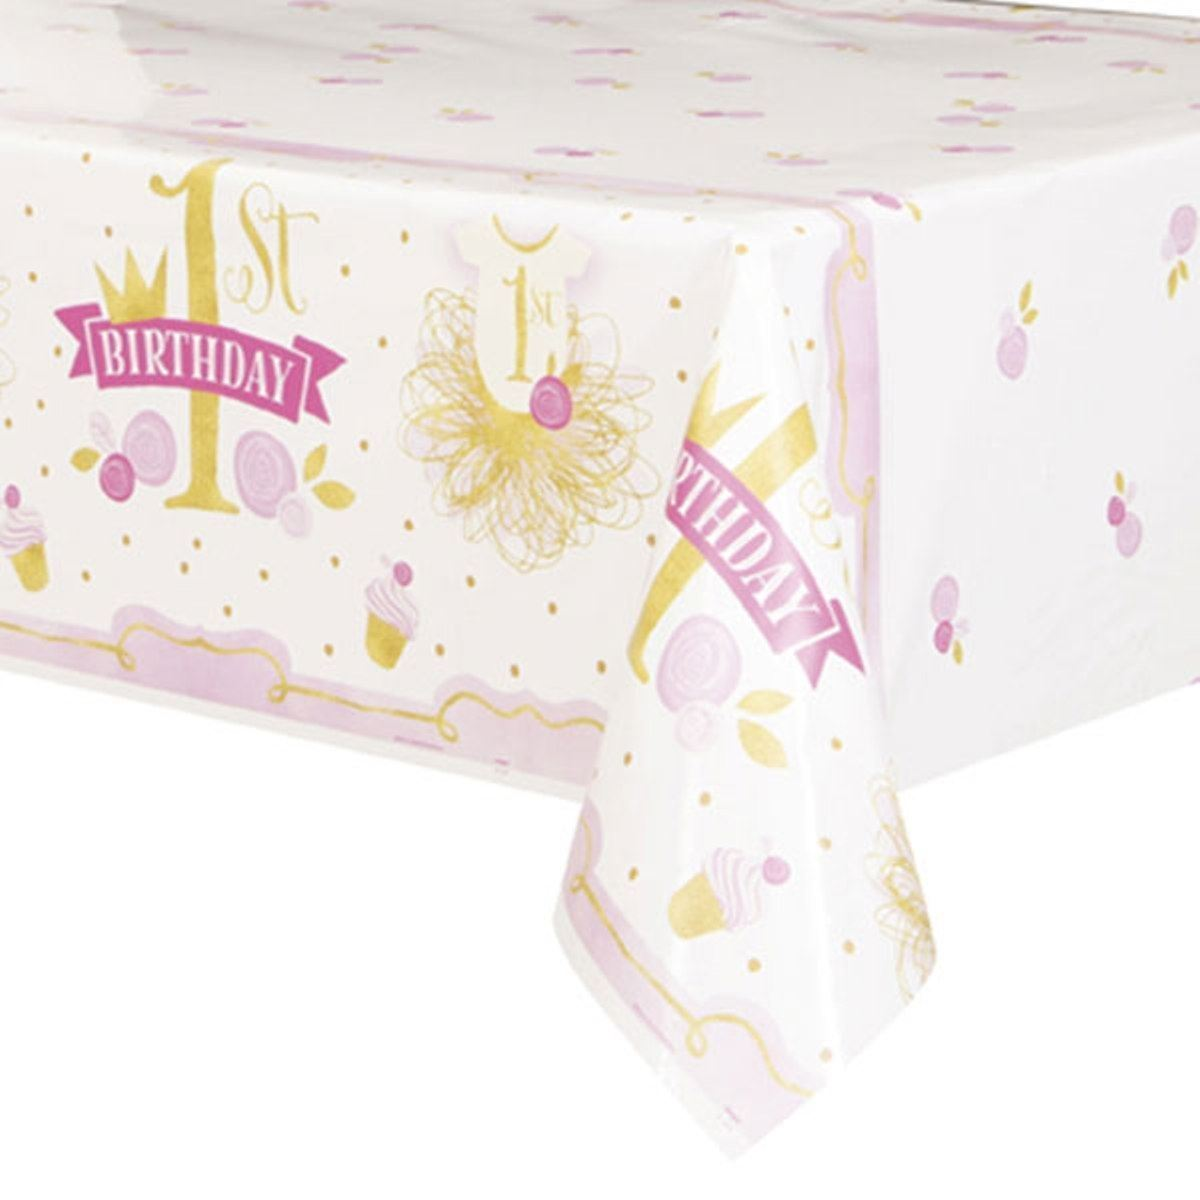 1st Birthday Pink Gold Girls Tablecover 54 x 84